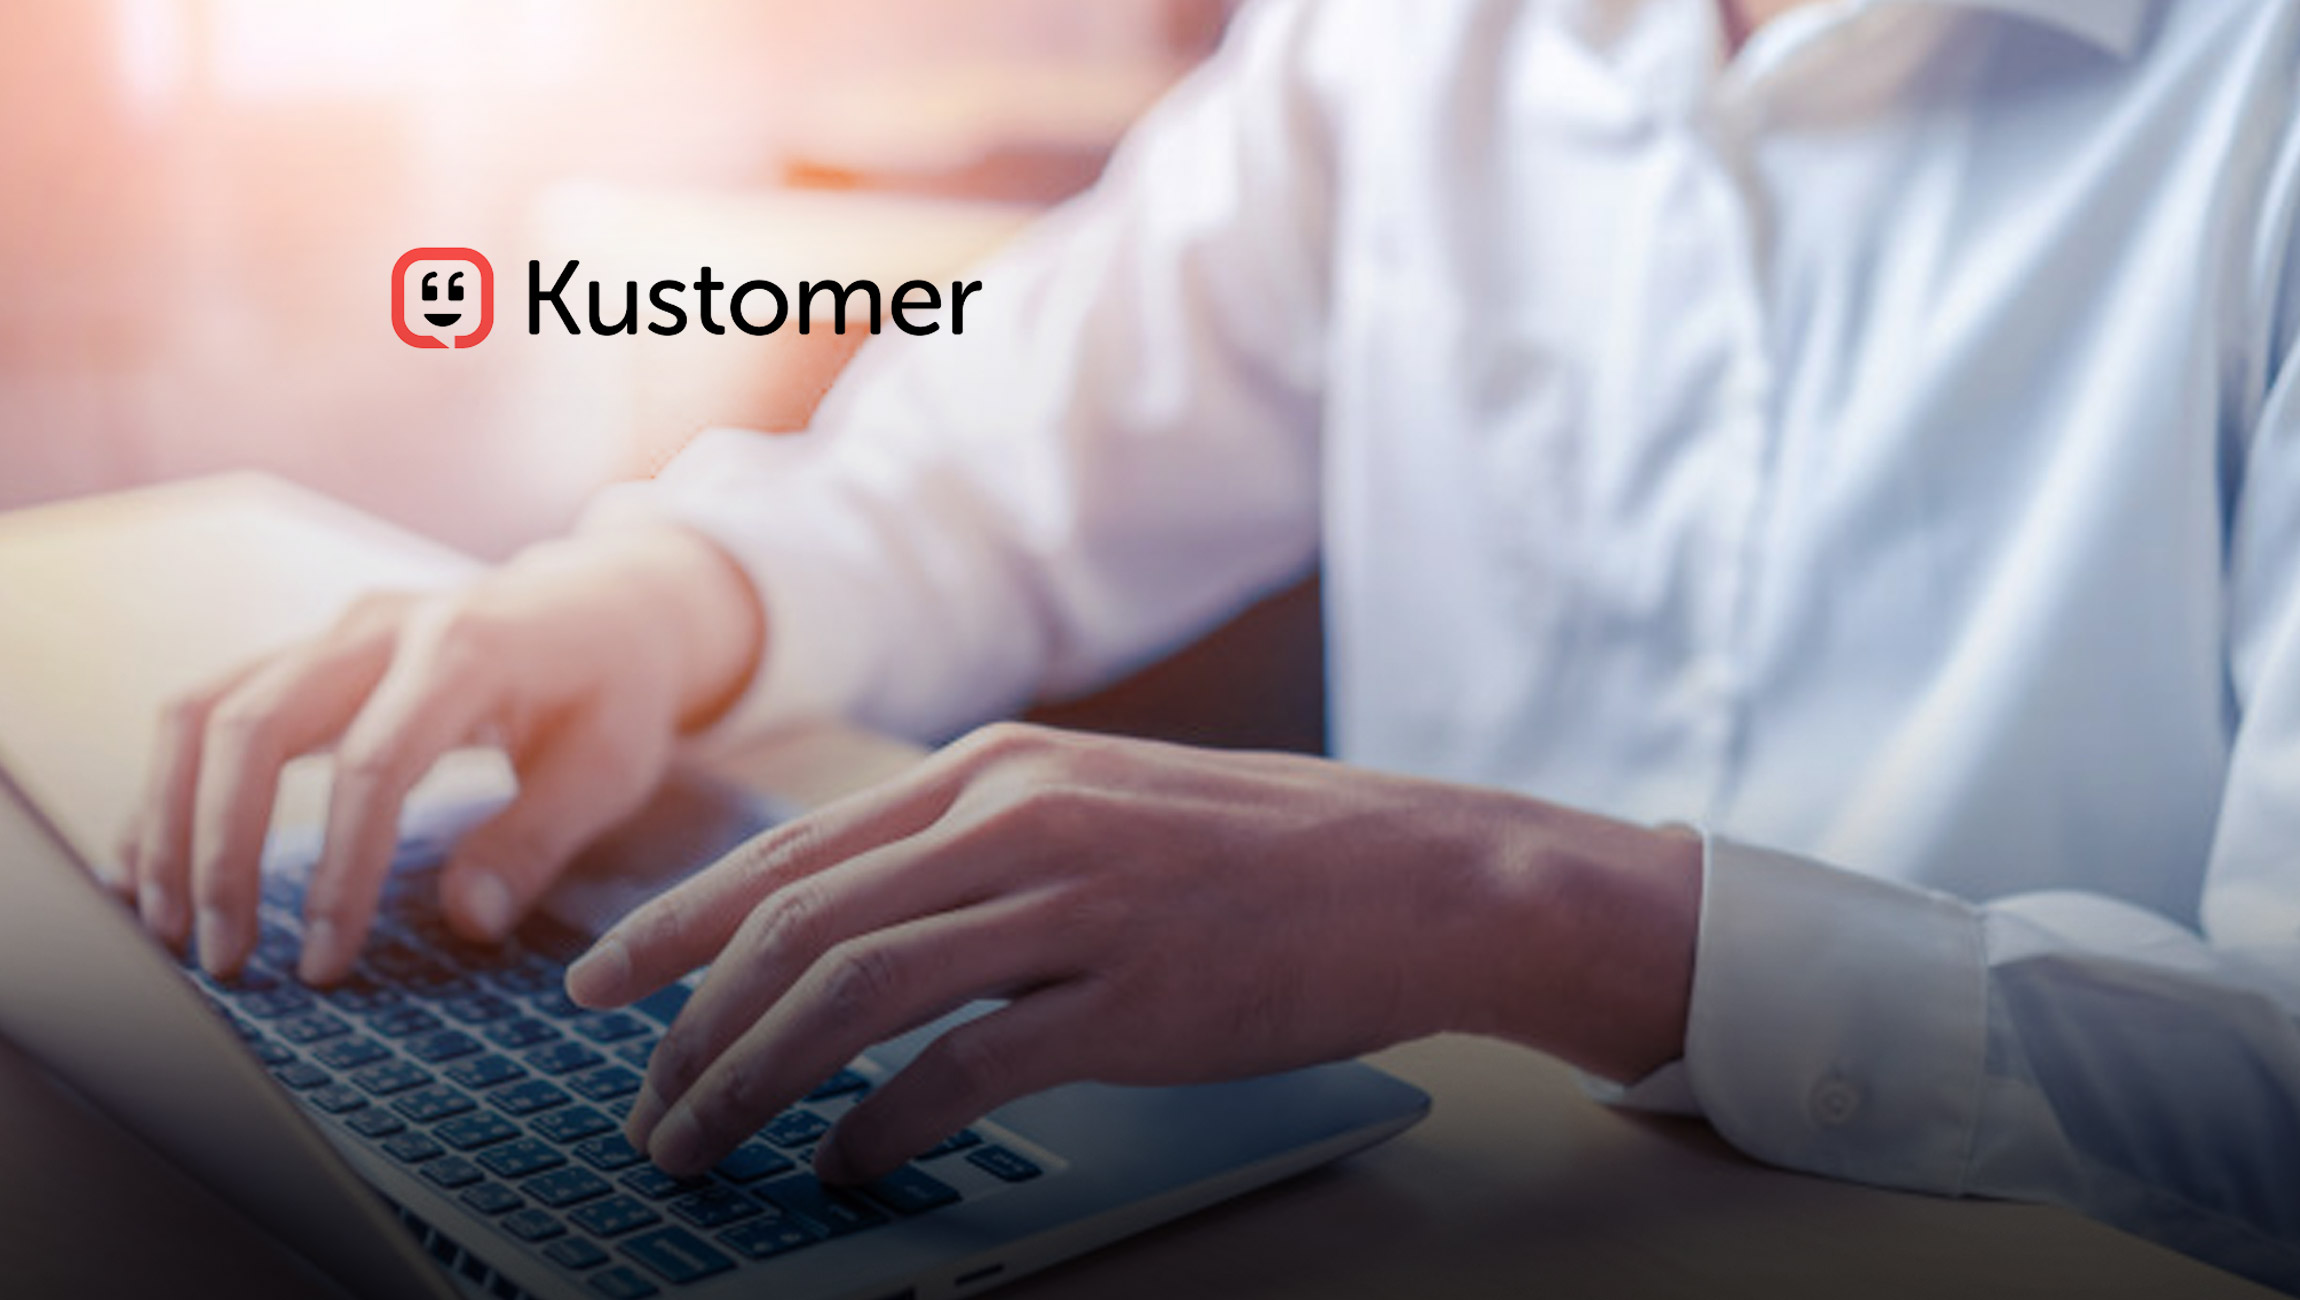 Kustomer Launches New App Marketplace, Making it Easy for Businesses to Connect Tools, Processes and Data into a Unified Customer Experience